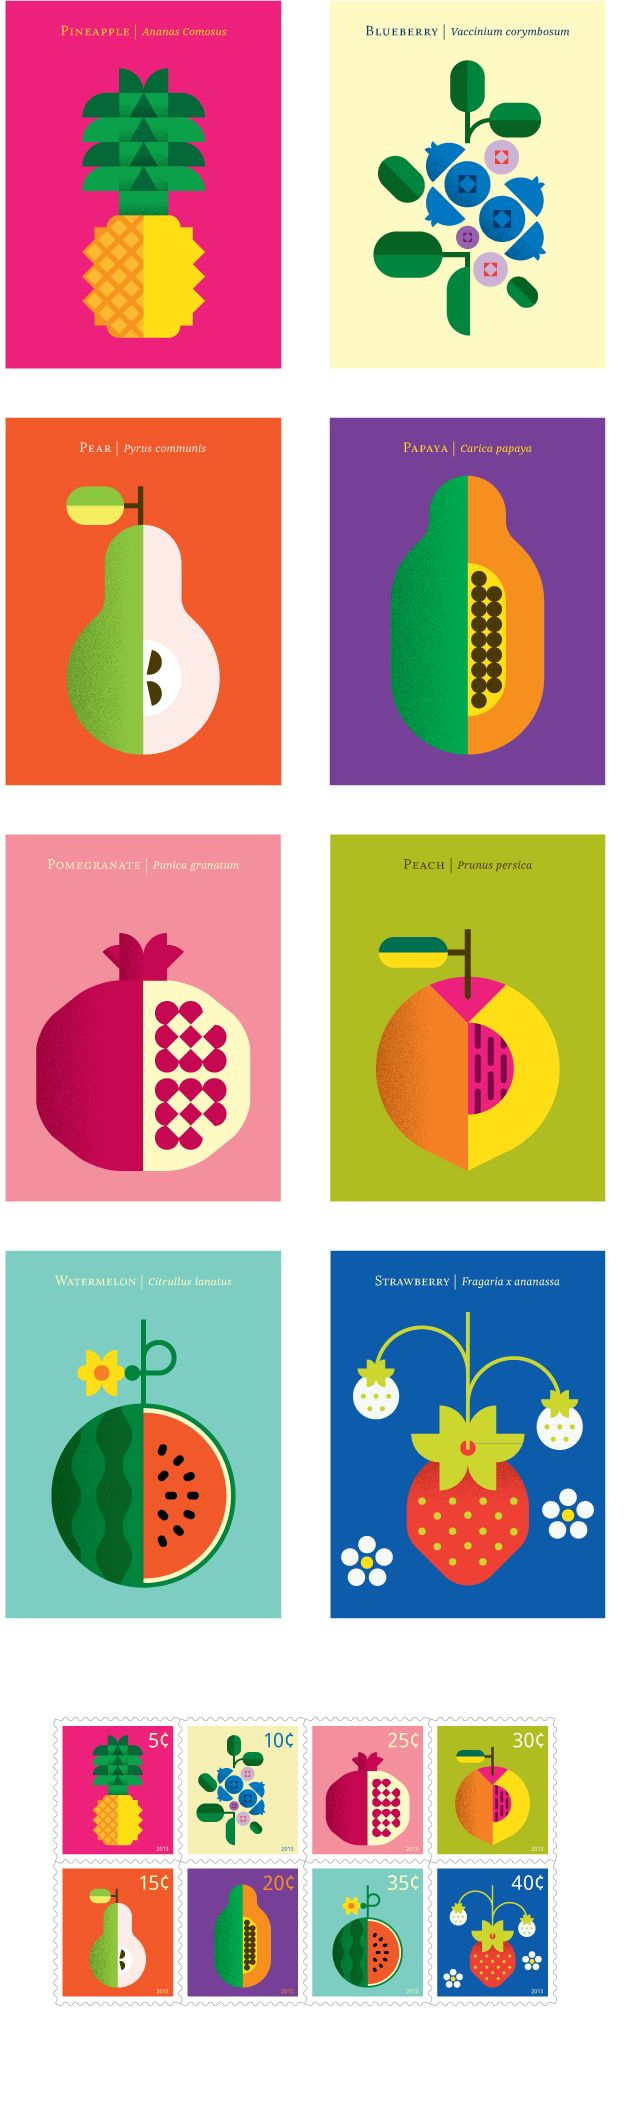 wondrous varieties of fruit -christopher dina-